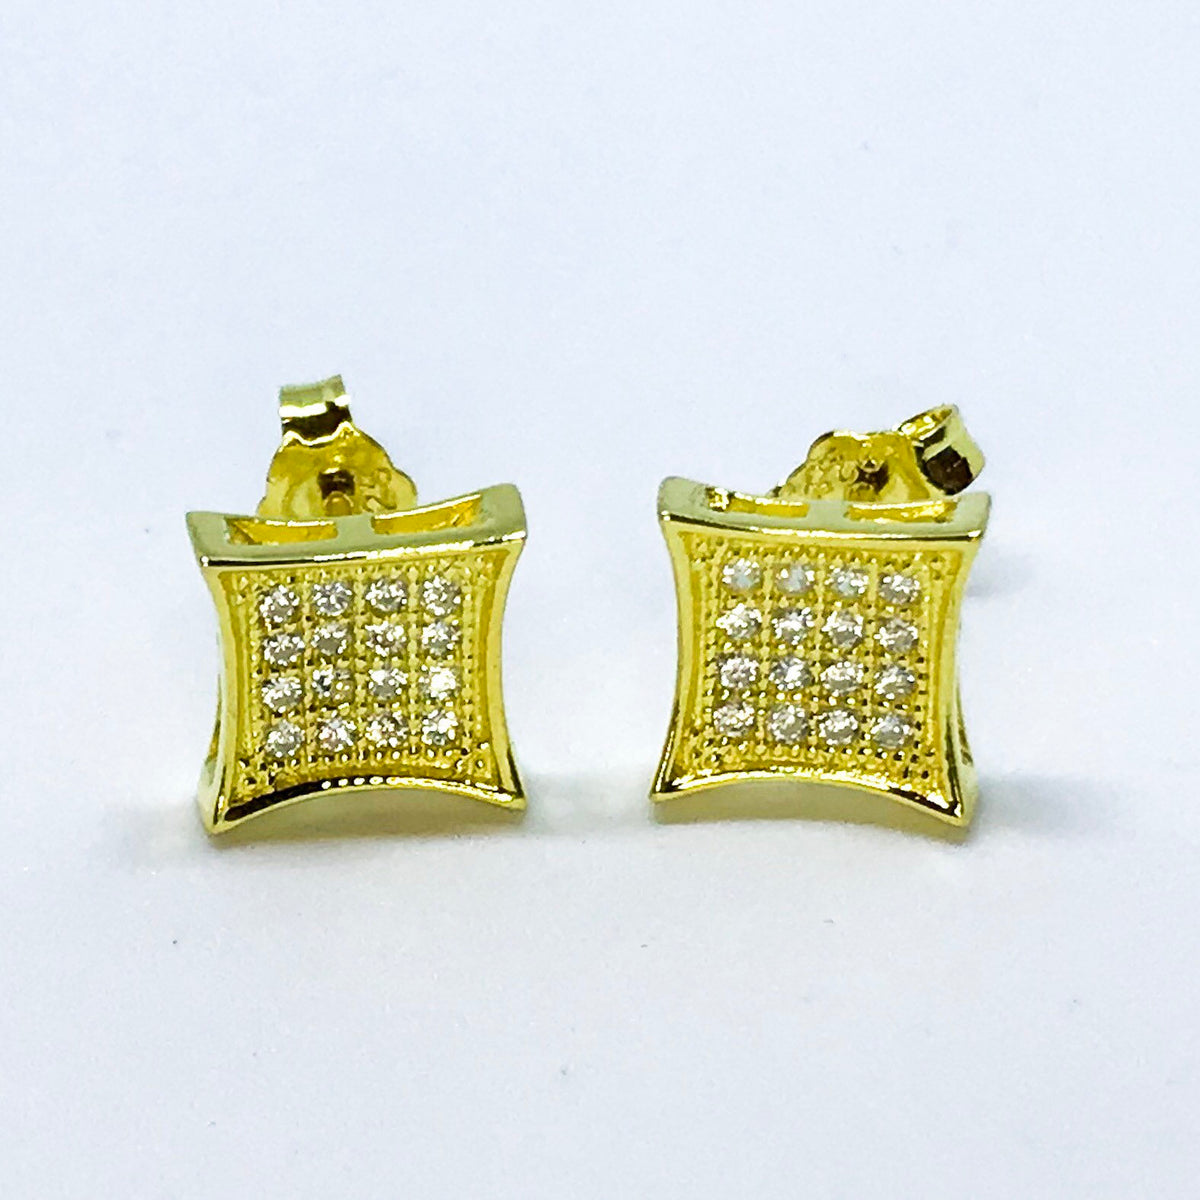 14k Yellow Gold on Sterling Silver Square Earrings - 3 Royal Dazzy